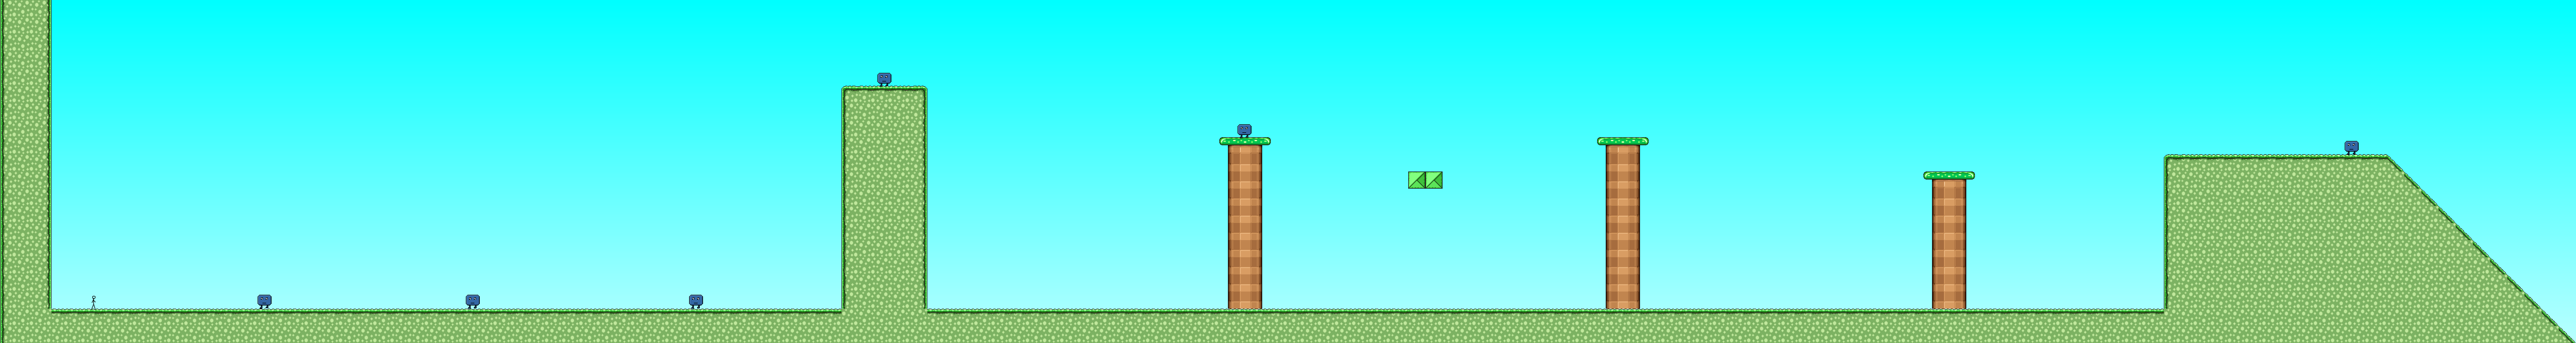 Jump and run your way through 10 different levels can u beat the